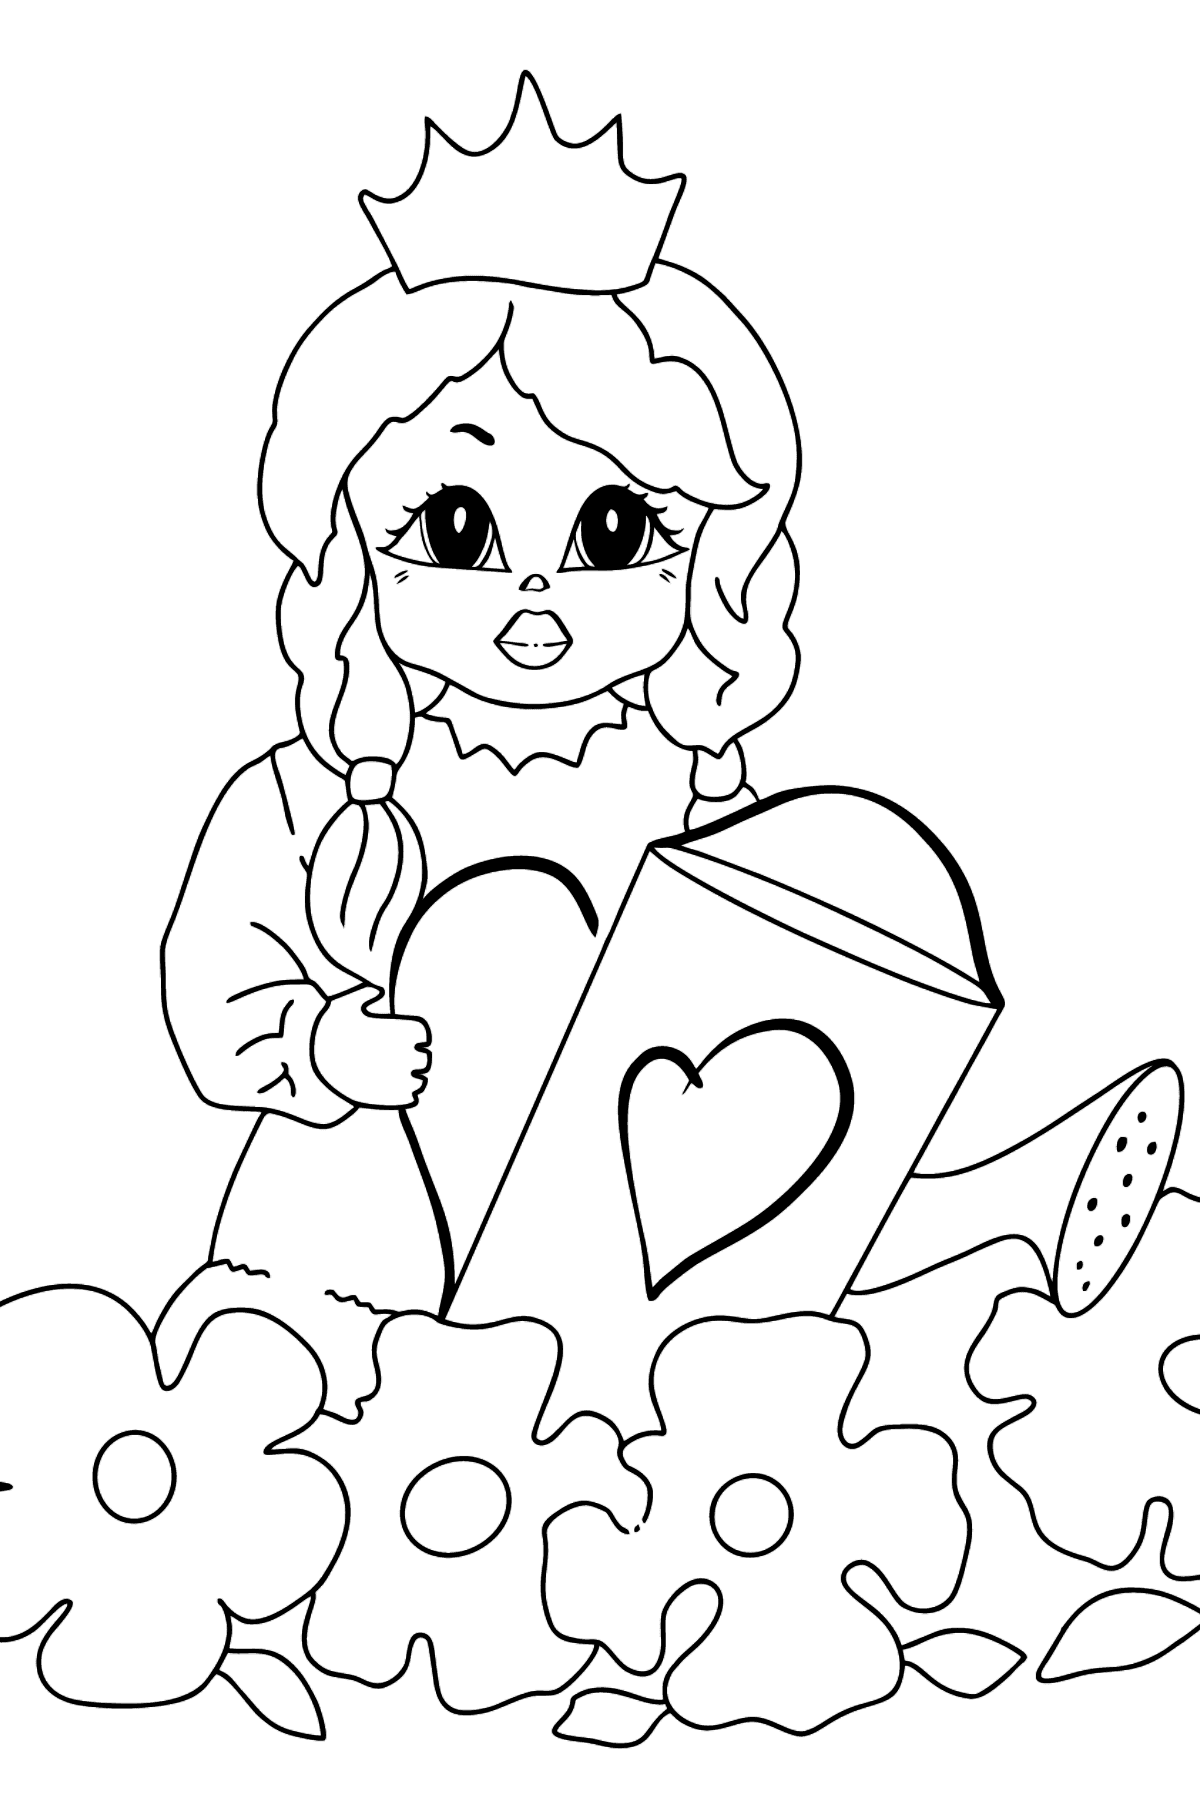 Coloring Page - A Princess with a Watering Can - Coloring Pages for Kids